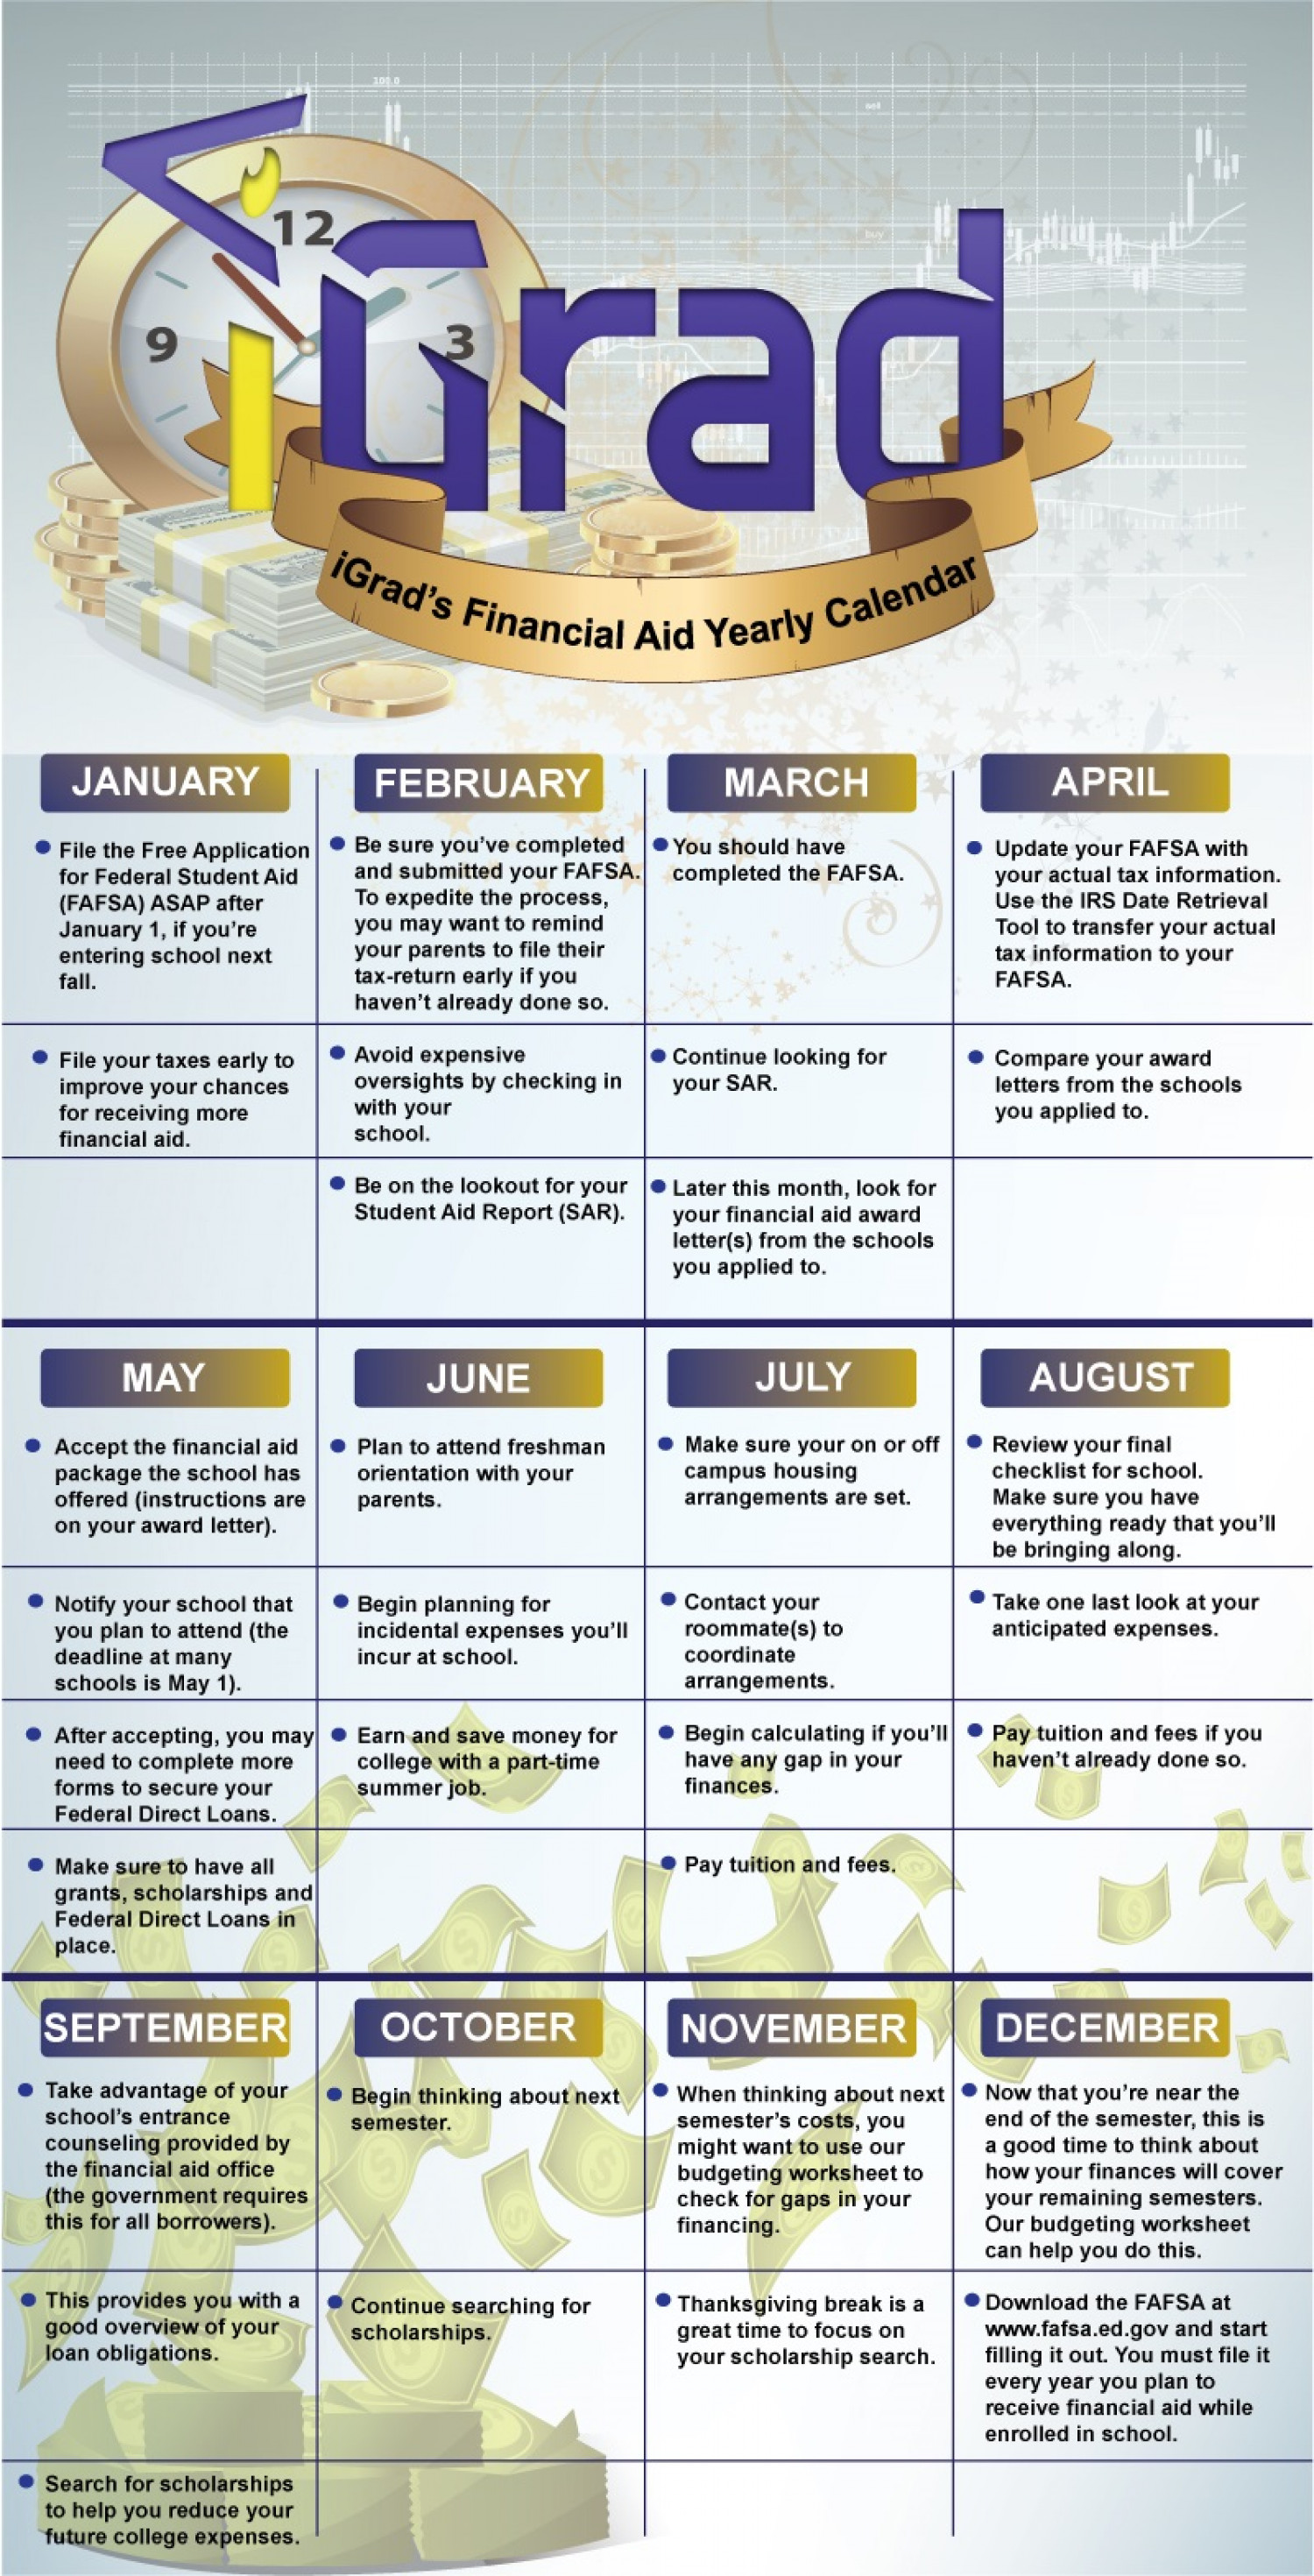 iGrad's Financial Aid Yearly Calendar Infographic